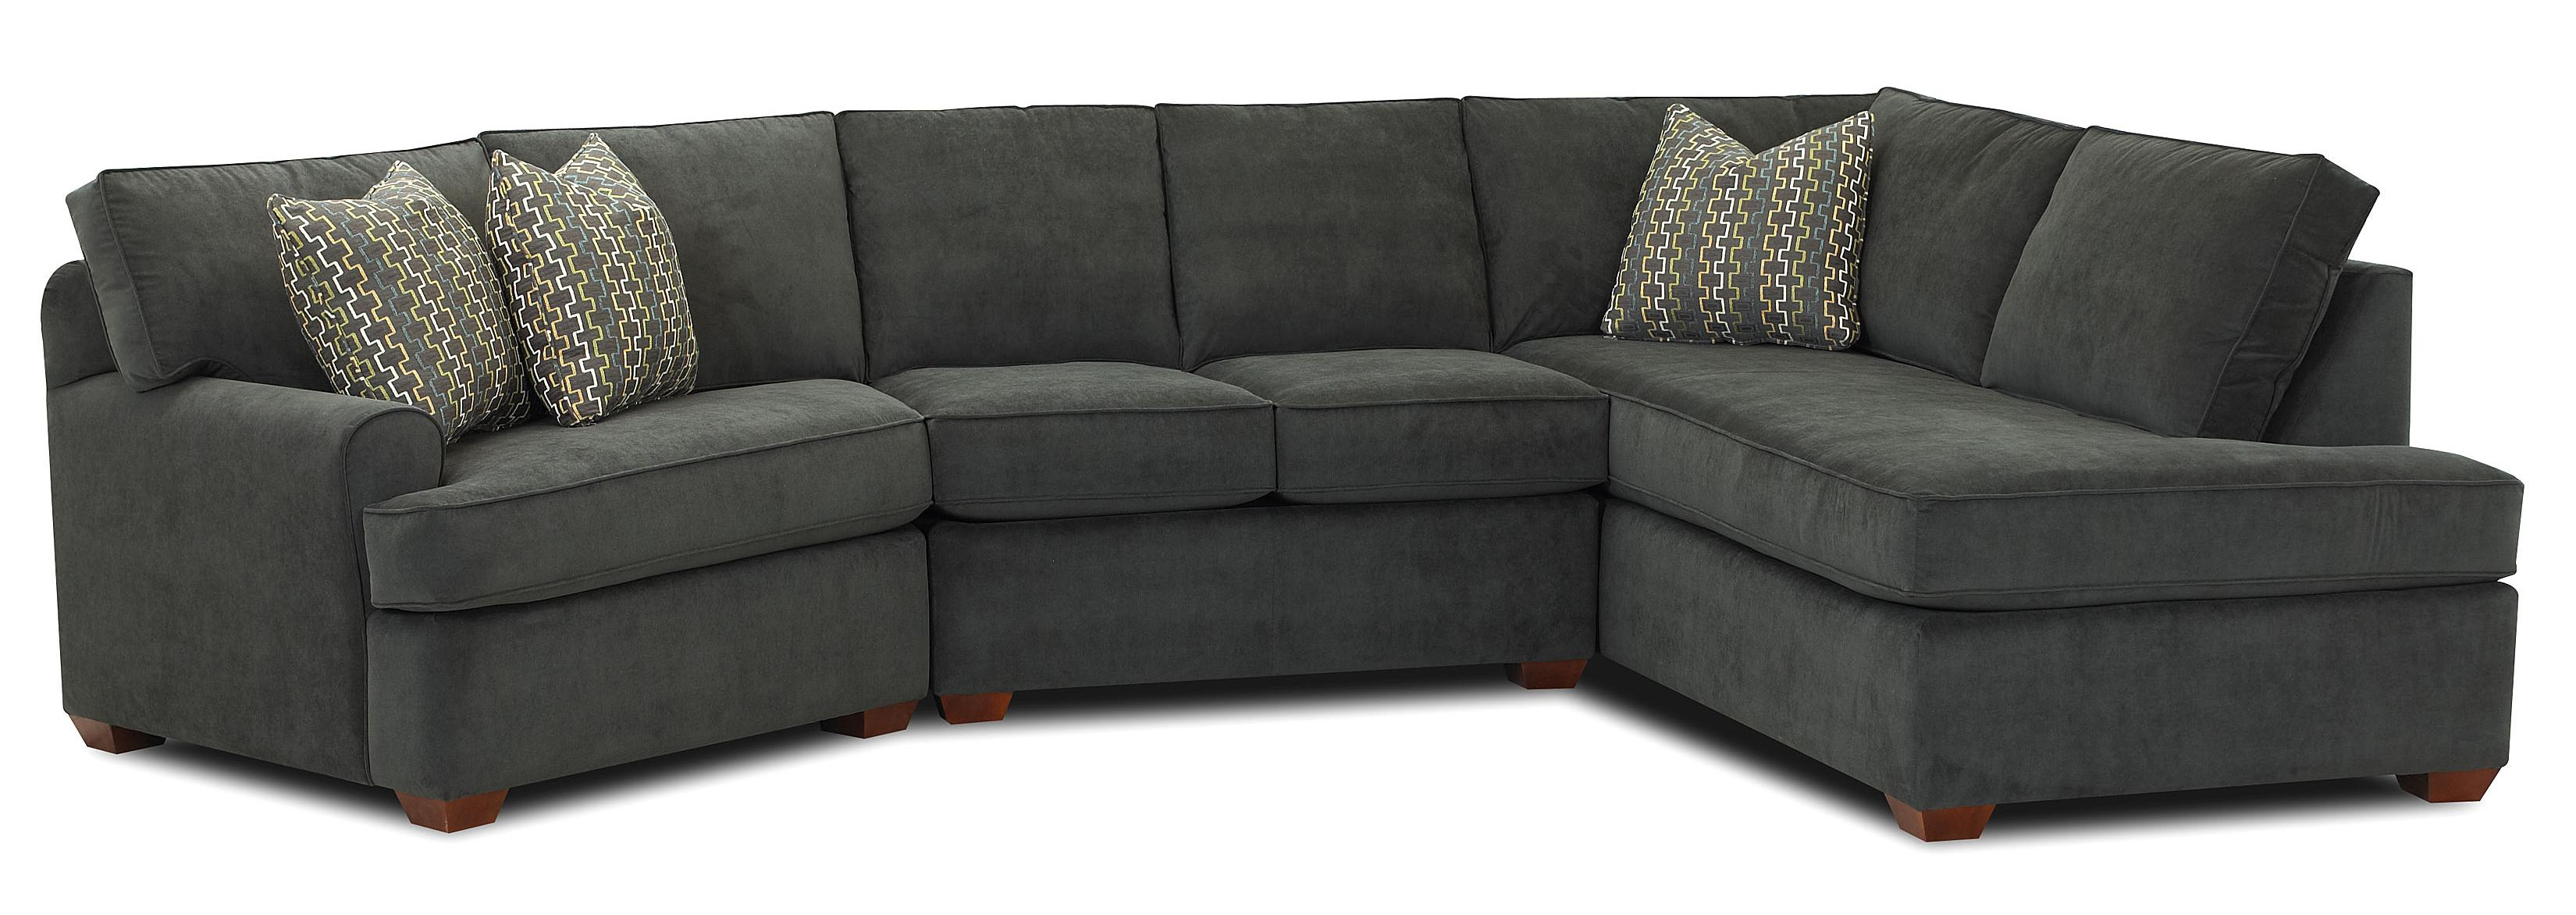 Sectional Sofa with Right Facing Sofa Chaise by Klaussner  : products2Fklaussner2Fcolor2Fhybridk54400l20bc2Bals2Br20schs b from www.wolffurniture.com size 3300 x 1172 jpeg 356kB